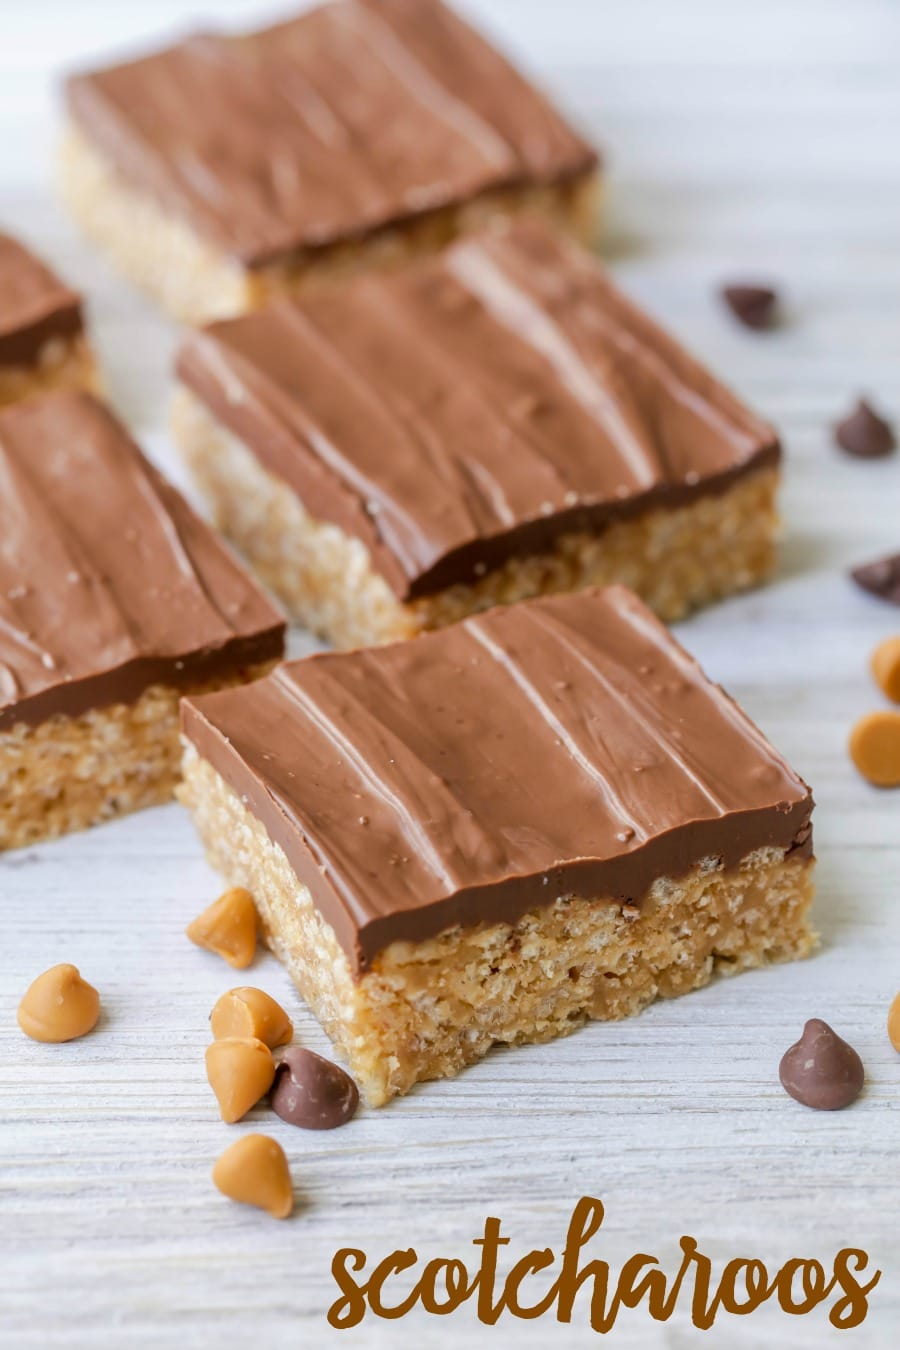 Delicious, irresistible Scotcharoos - a peanut butter crispy bottom topped with a butterscotch and chocolate topping!